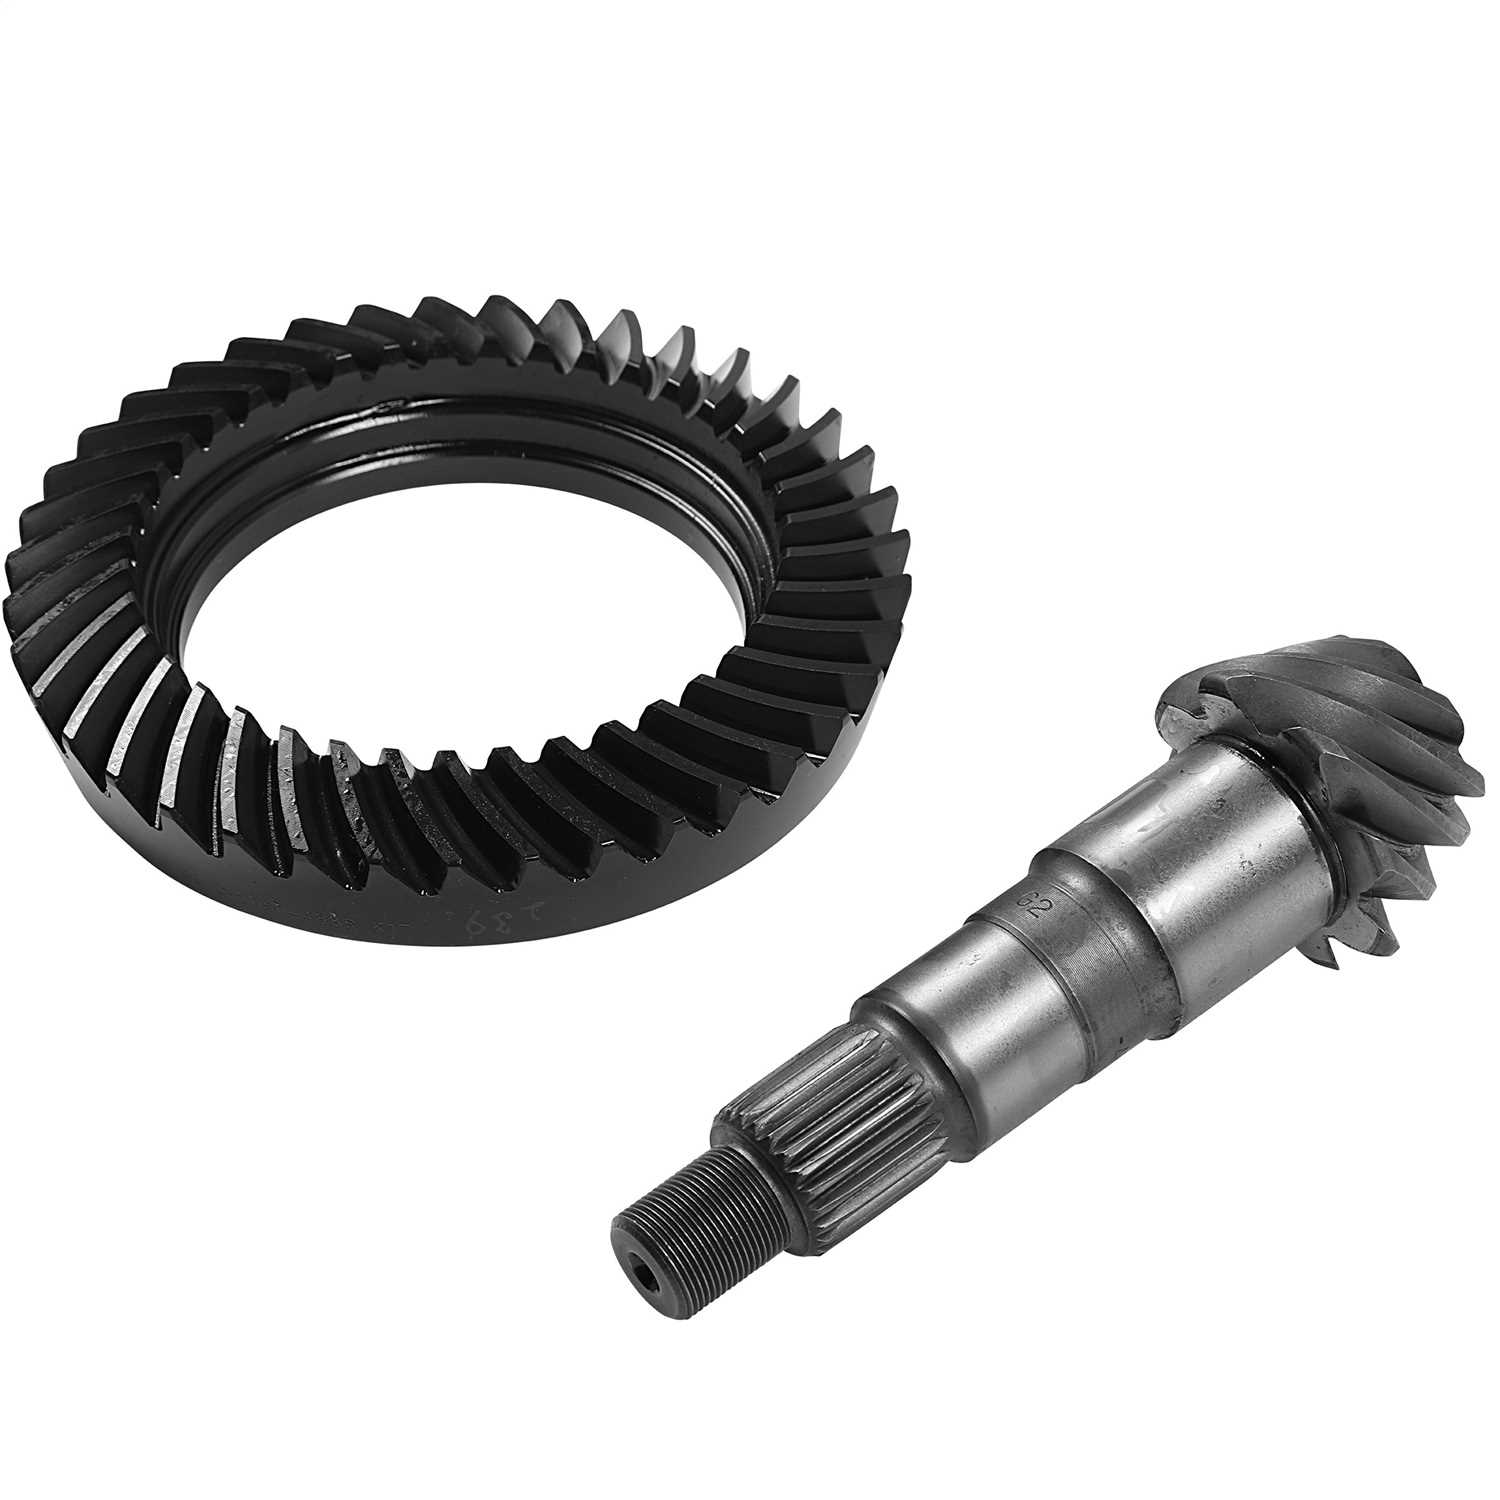 1-2149-513 G2 Axle and Gear Ring and Pinion Set